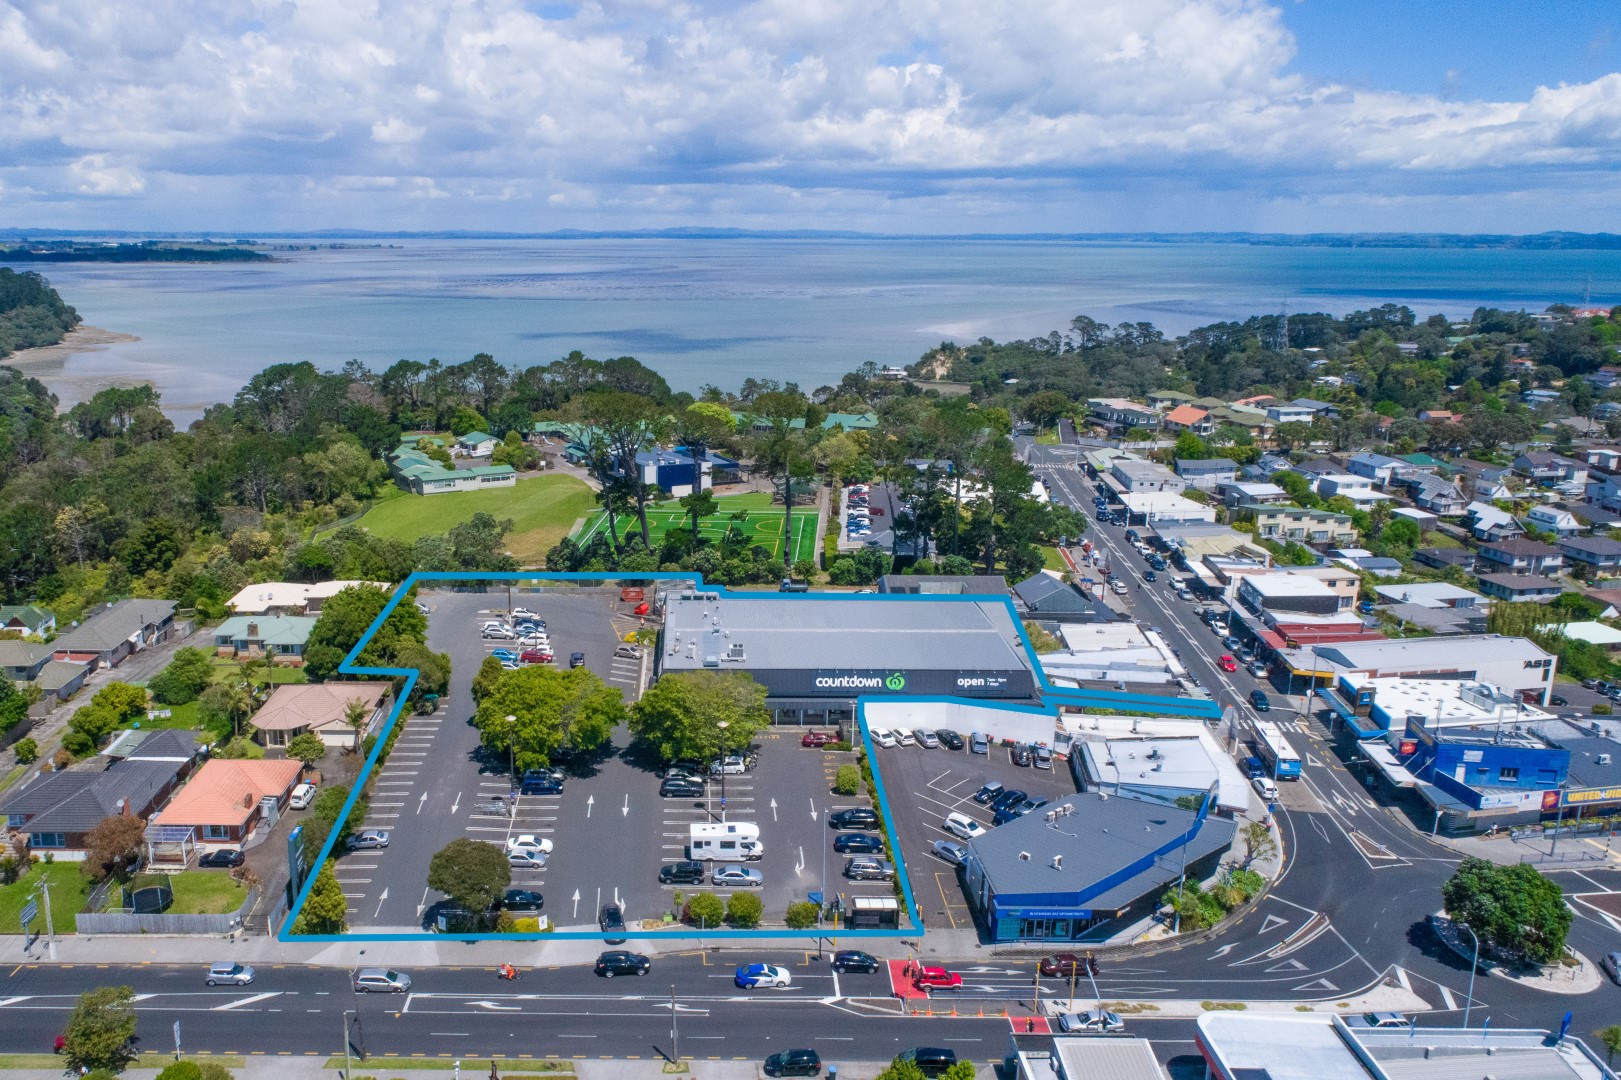 Commercial Property Sales | Page 3 | interest.co.nz